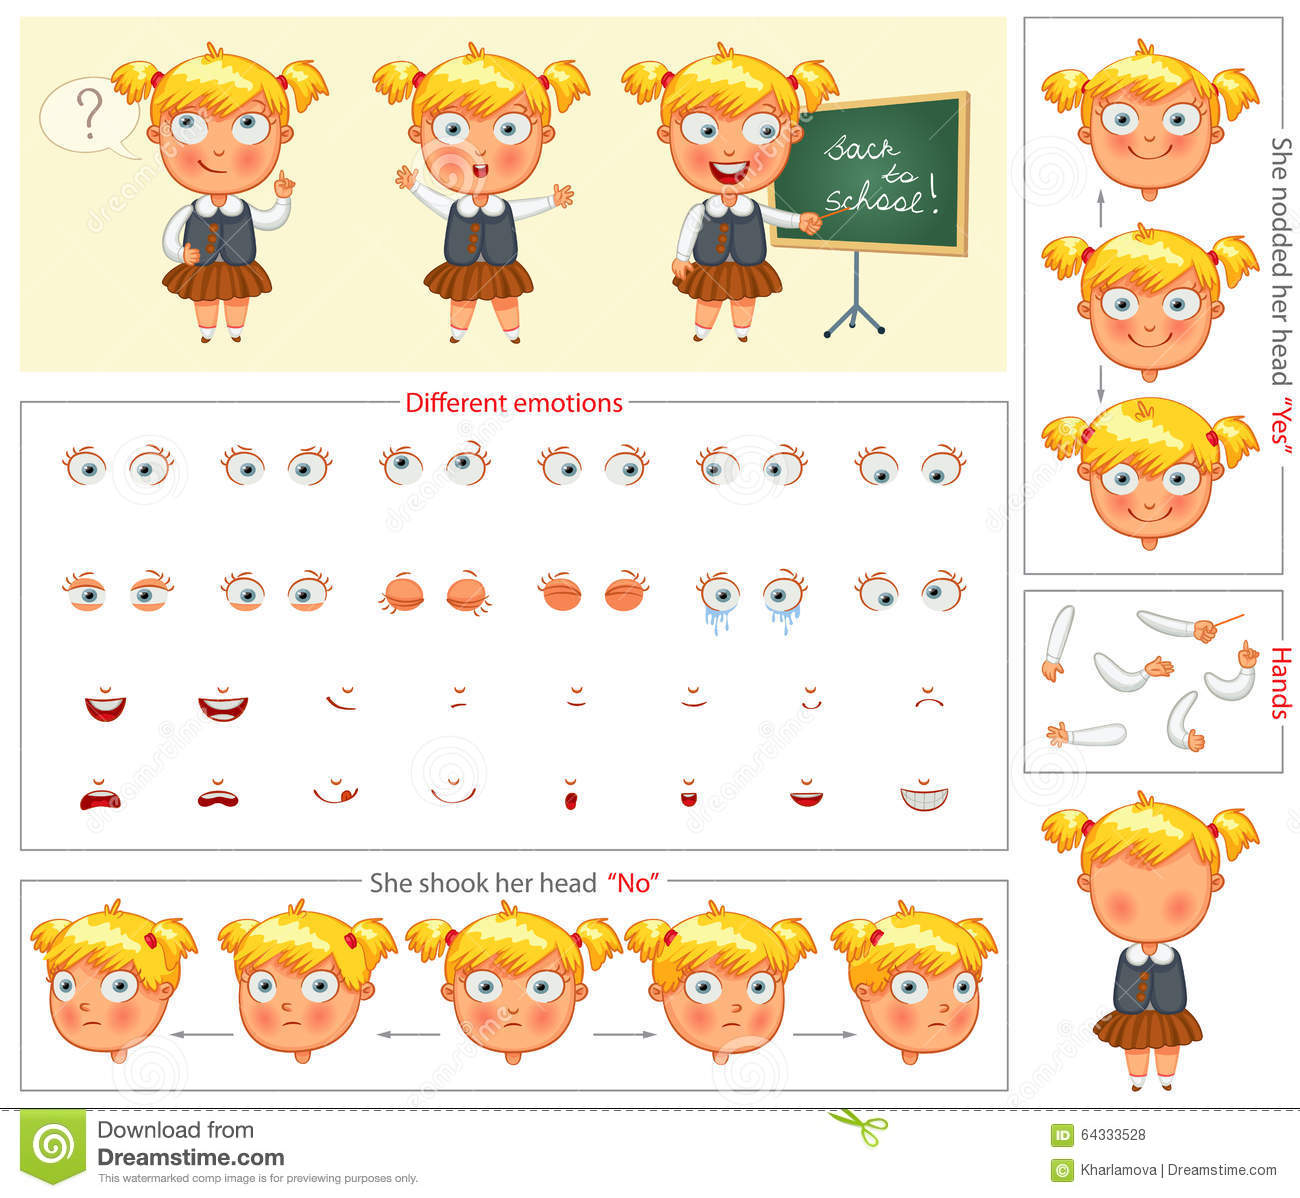 Cartoon Character Design Templates : Schoolgirl parts of body template for design work and